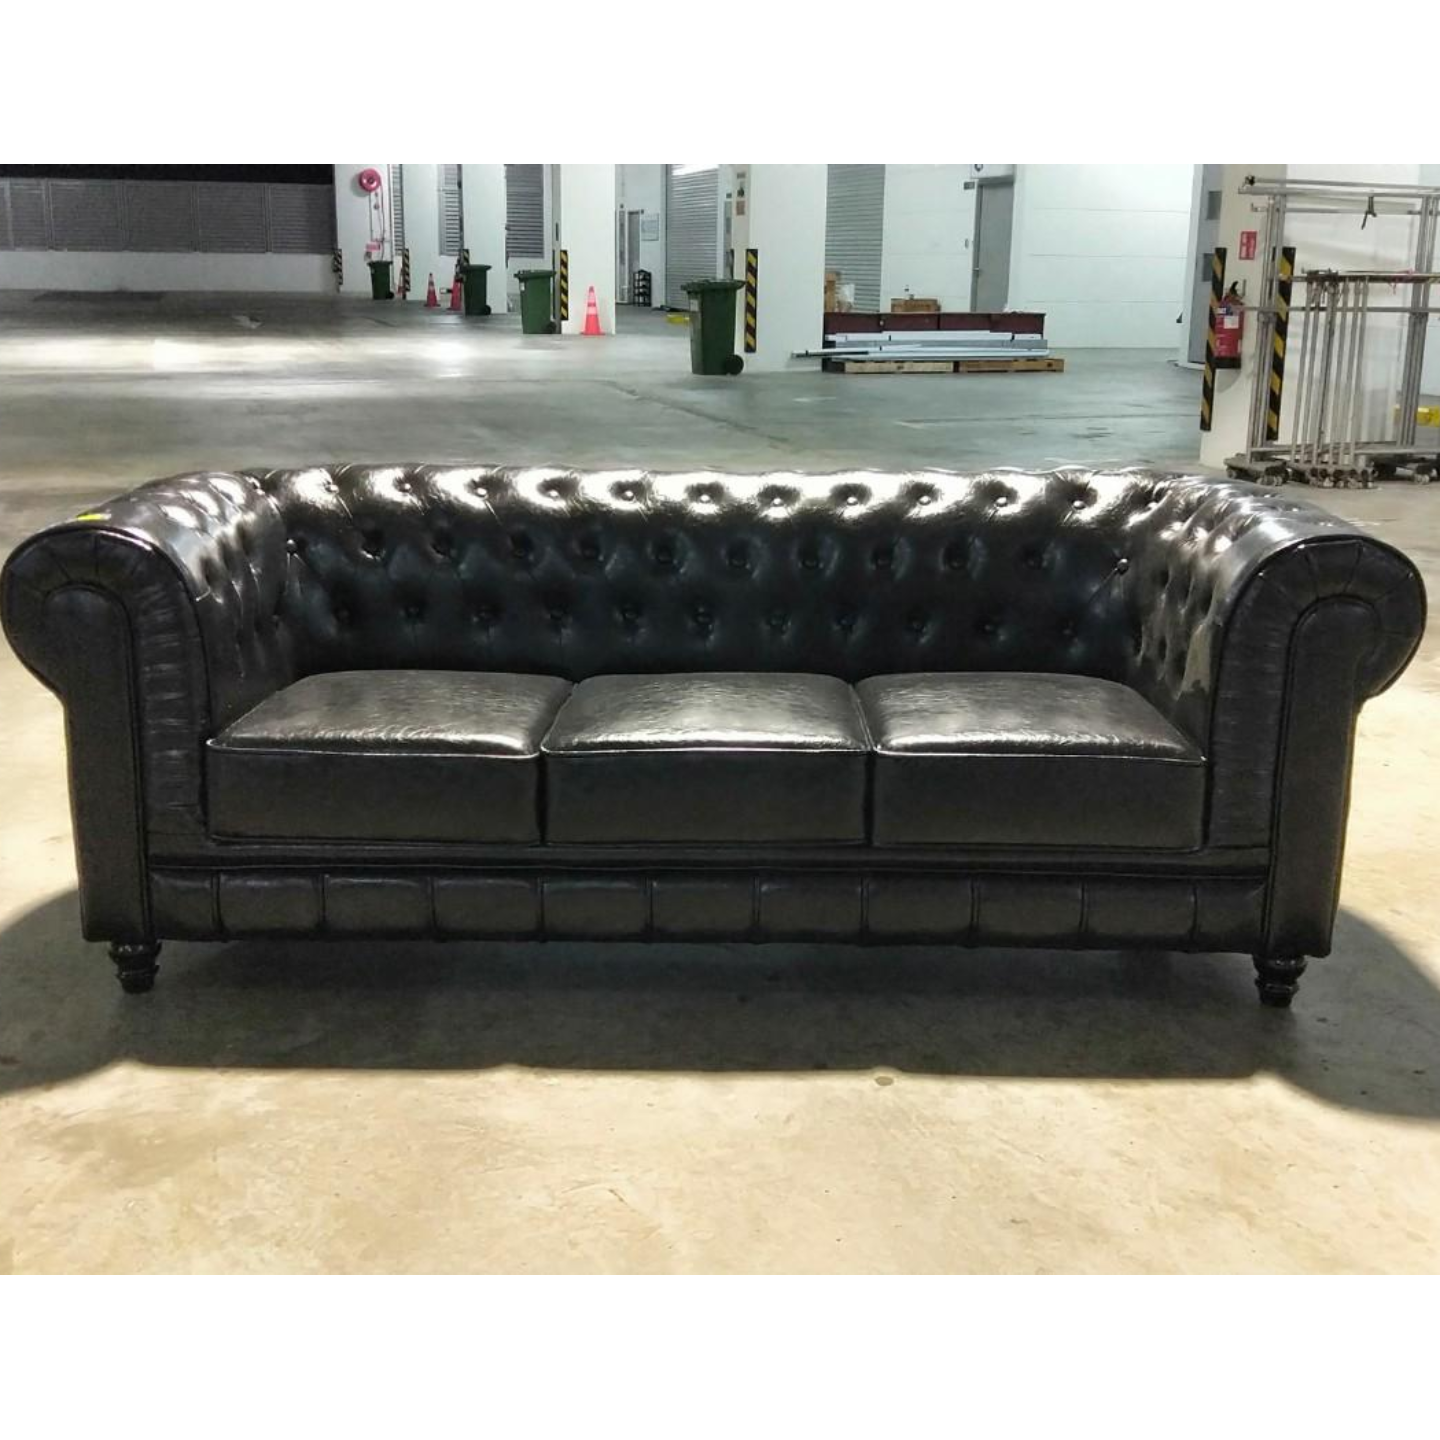 SALVADO II 3 Seater Sofa in GLOSS BLACK PU LEATHER